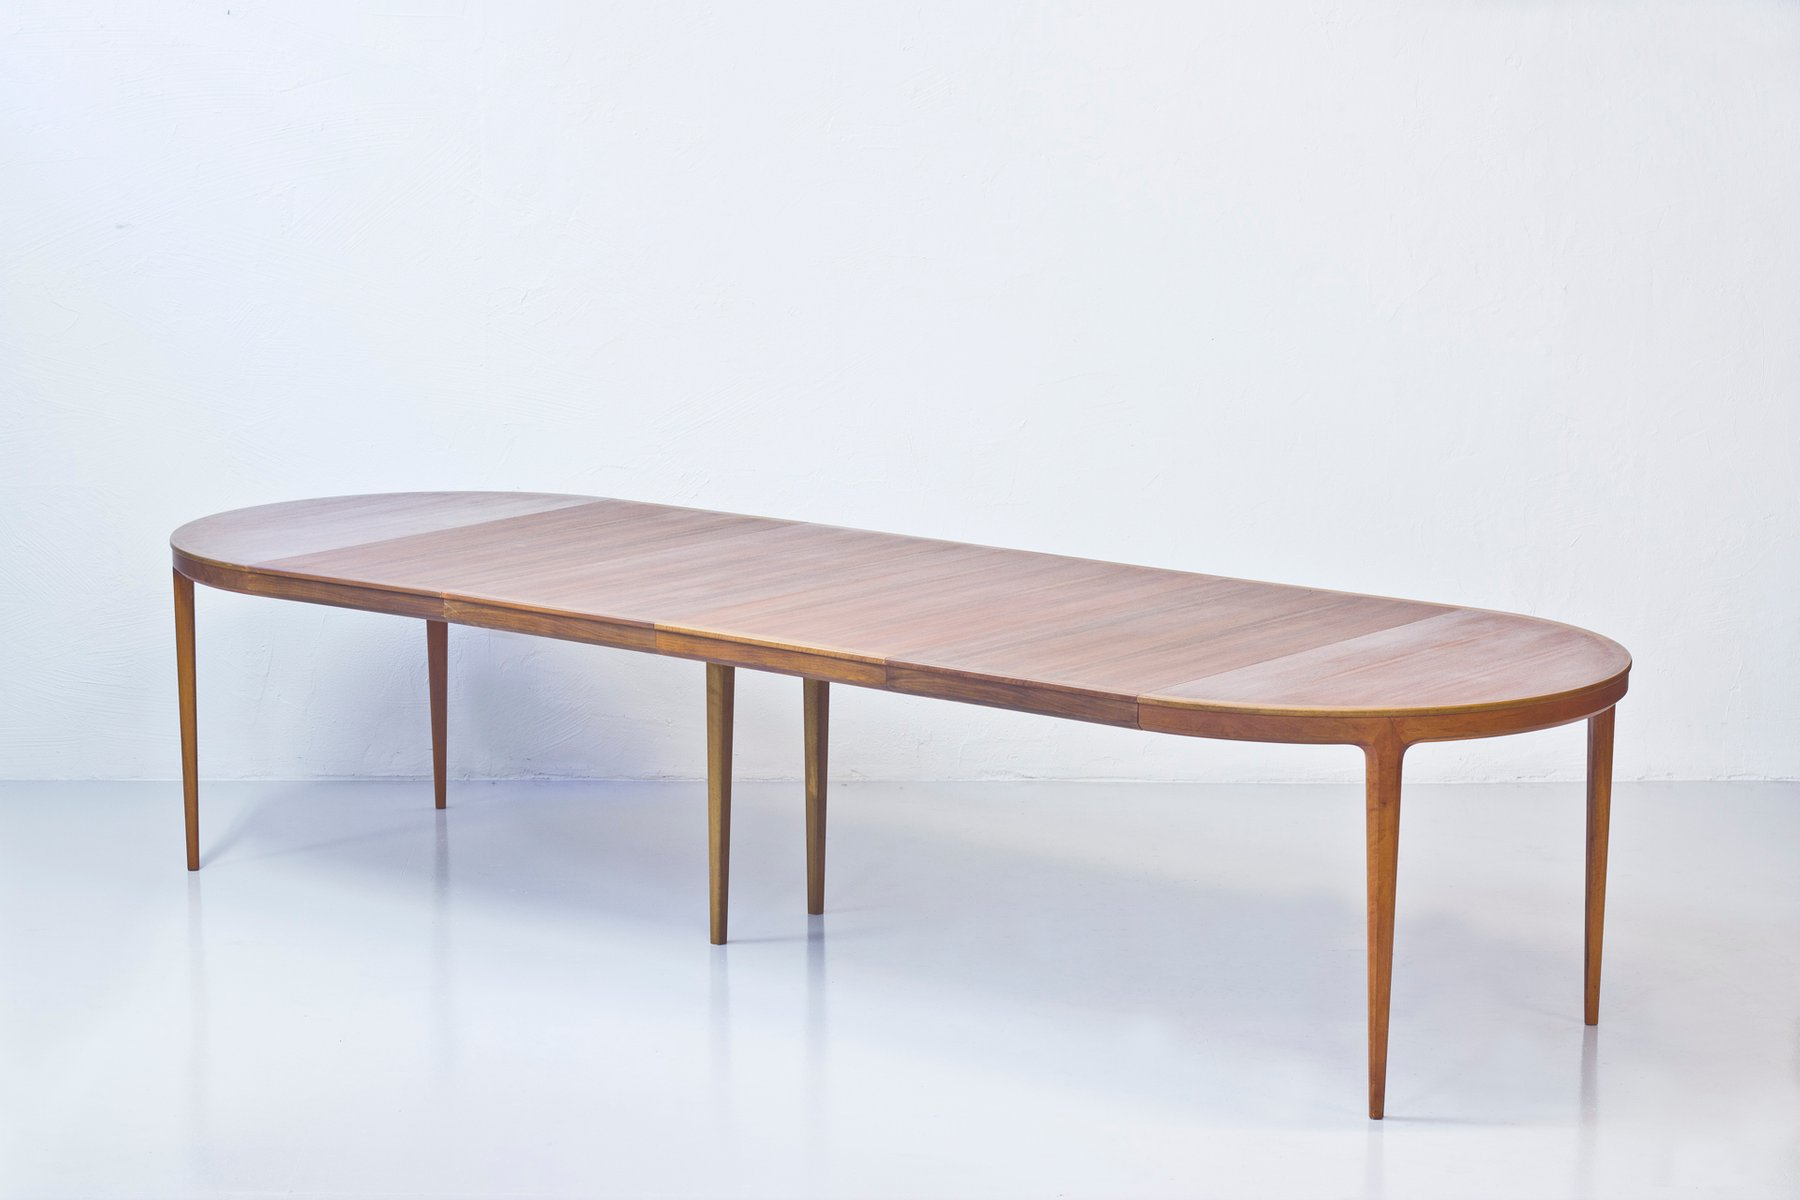 Table ronde pour salle a manger maison design for Salle a manger design table ronde